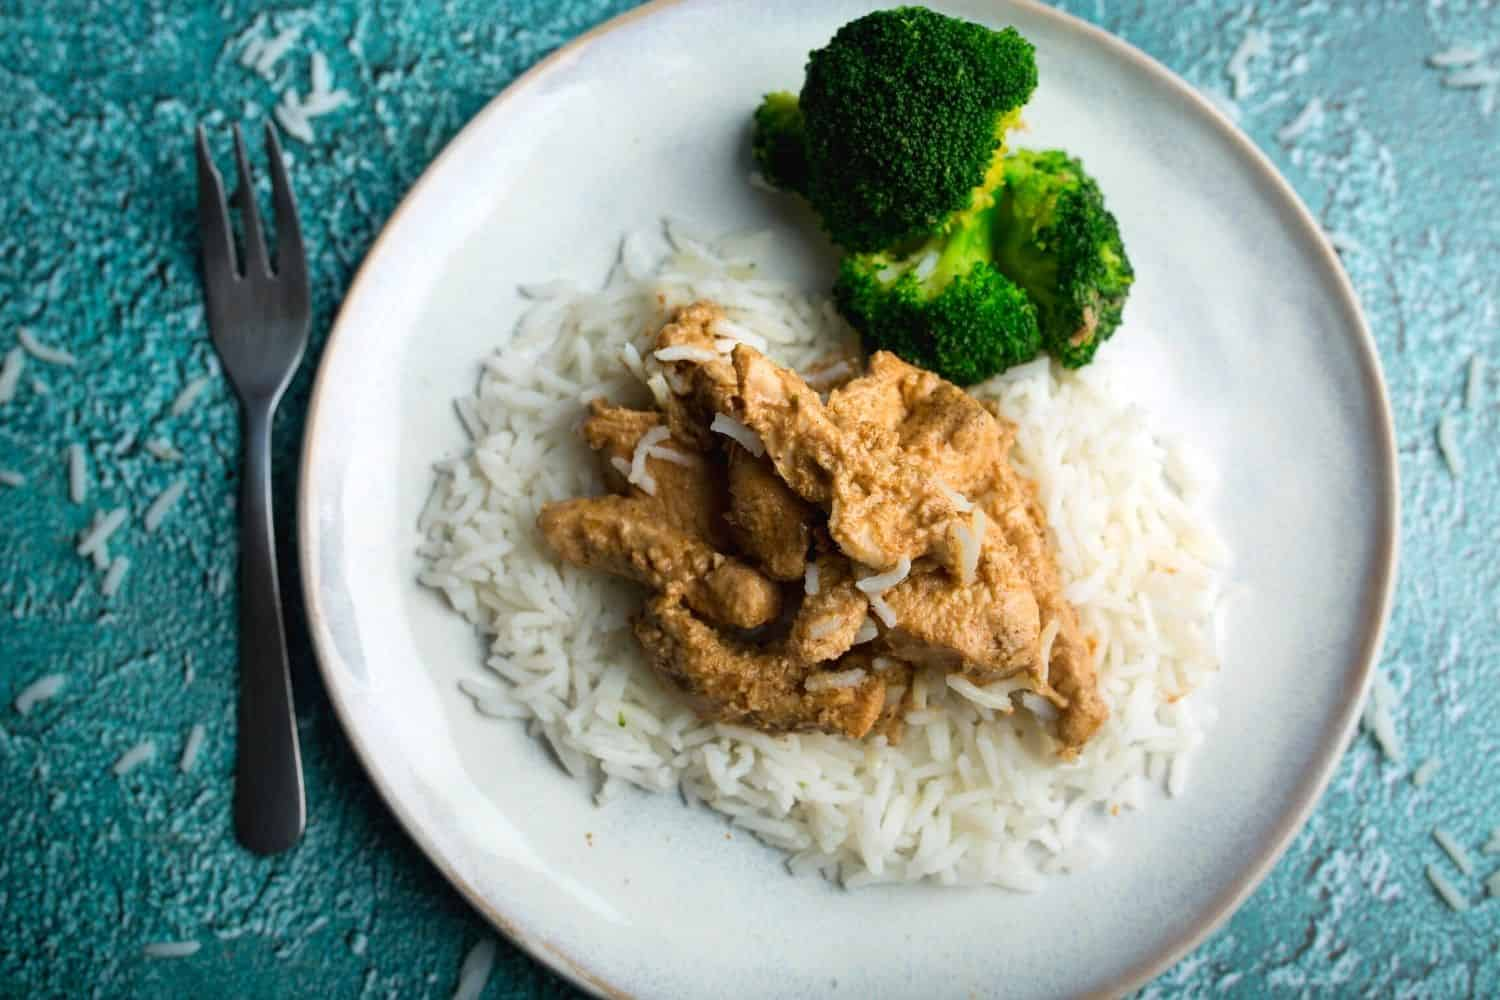 Grilled Chicken Strips with Broccoli and Rice